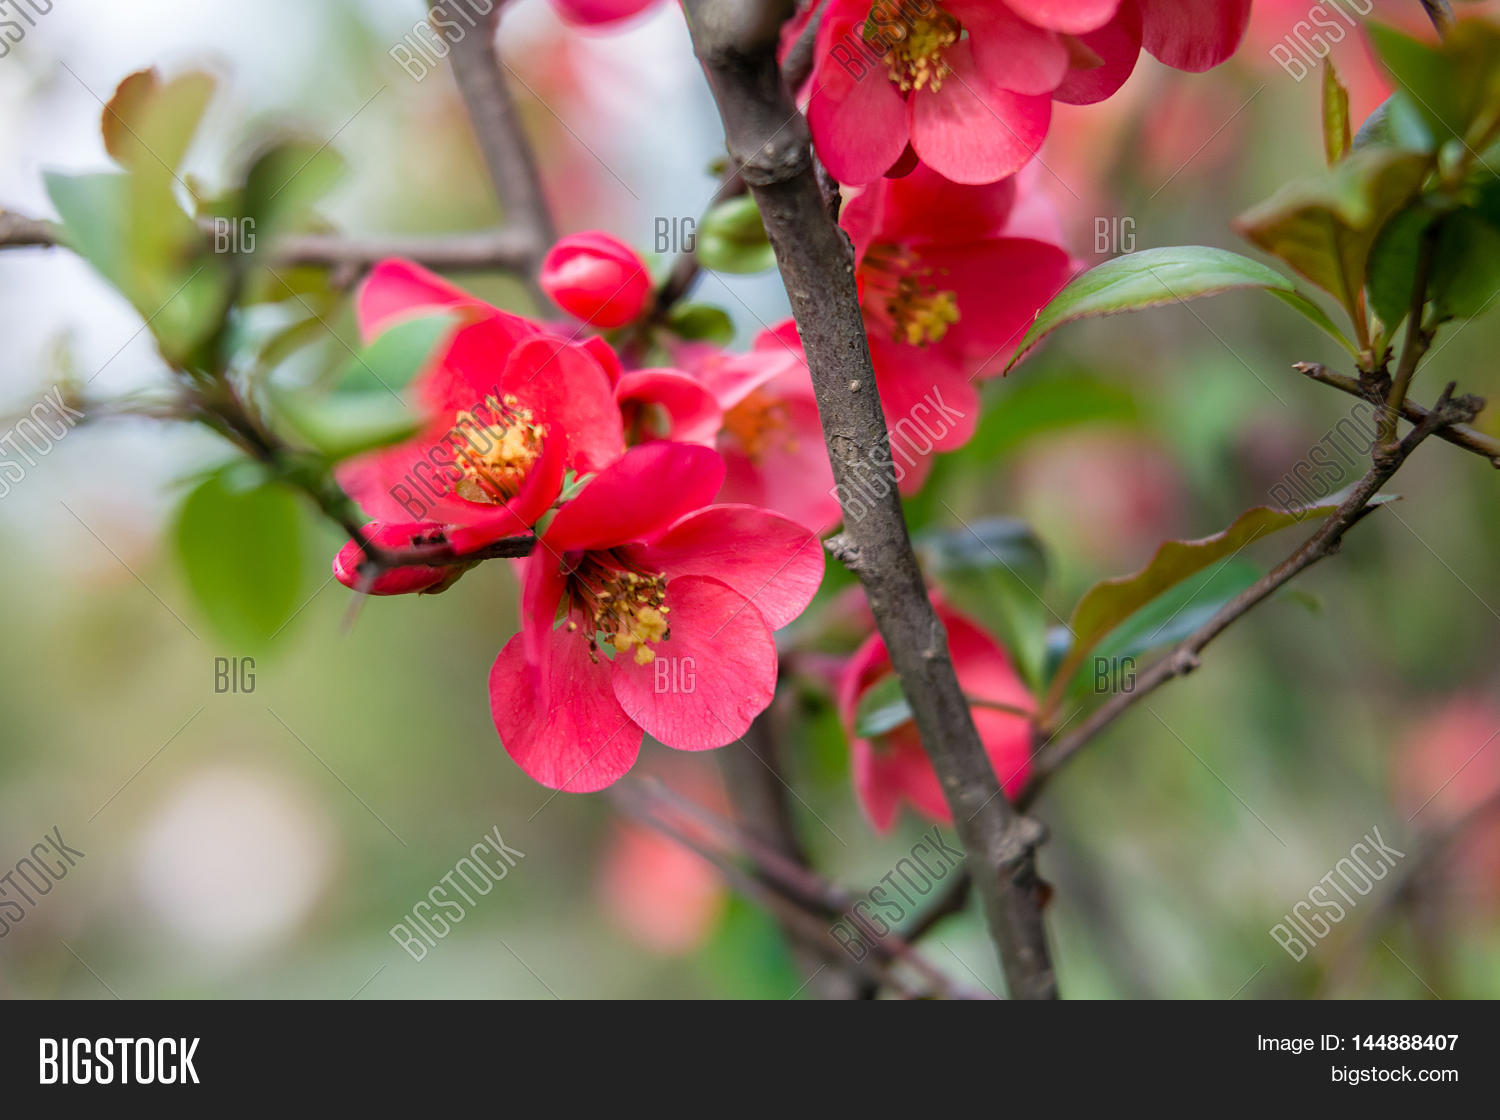 Purple flowers tree name flowers healthy beautiful red pink and purple flowers of crab apple tree with the botanical name of beautiful red pink image photo free trial bigstock mightylinksfo